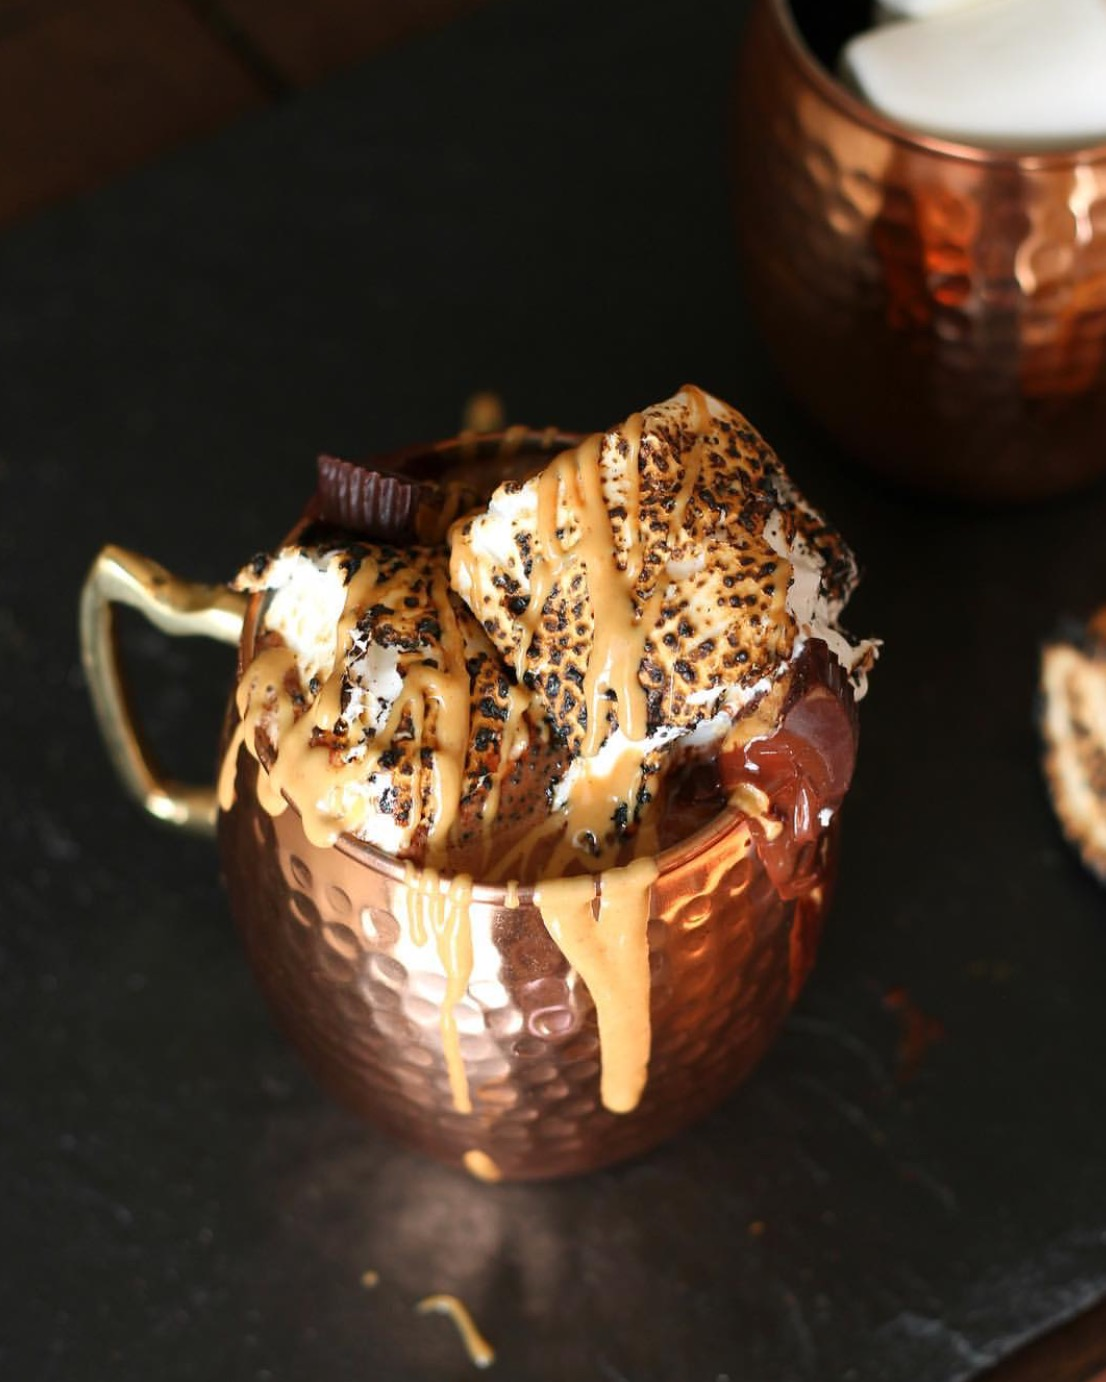 Toasted Marshmallow Peanut Butter Cup Hot Chocolate Recipe